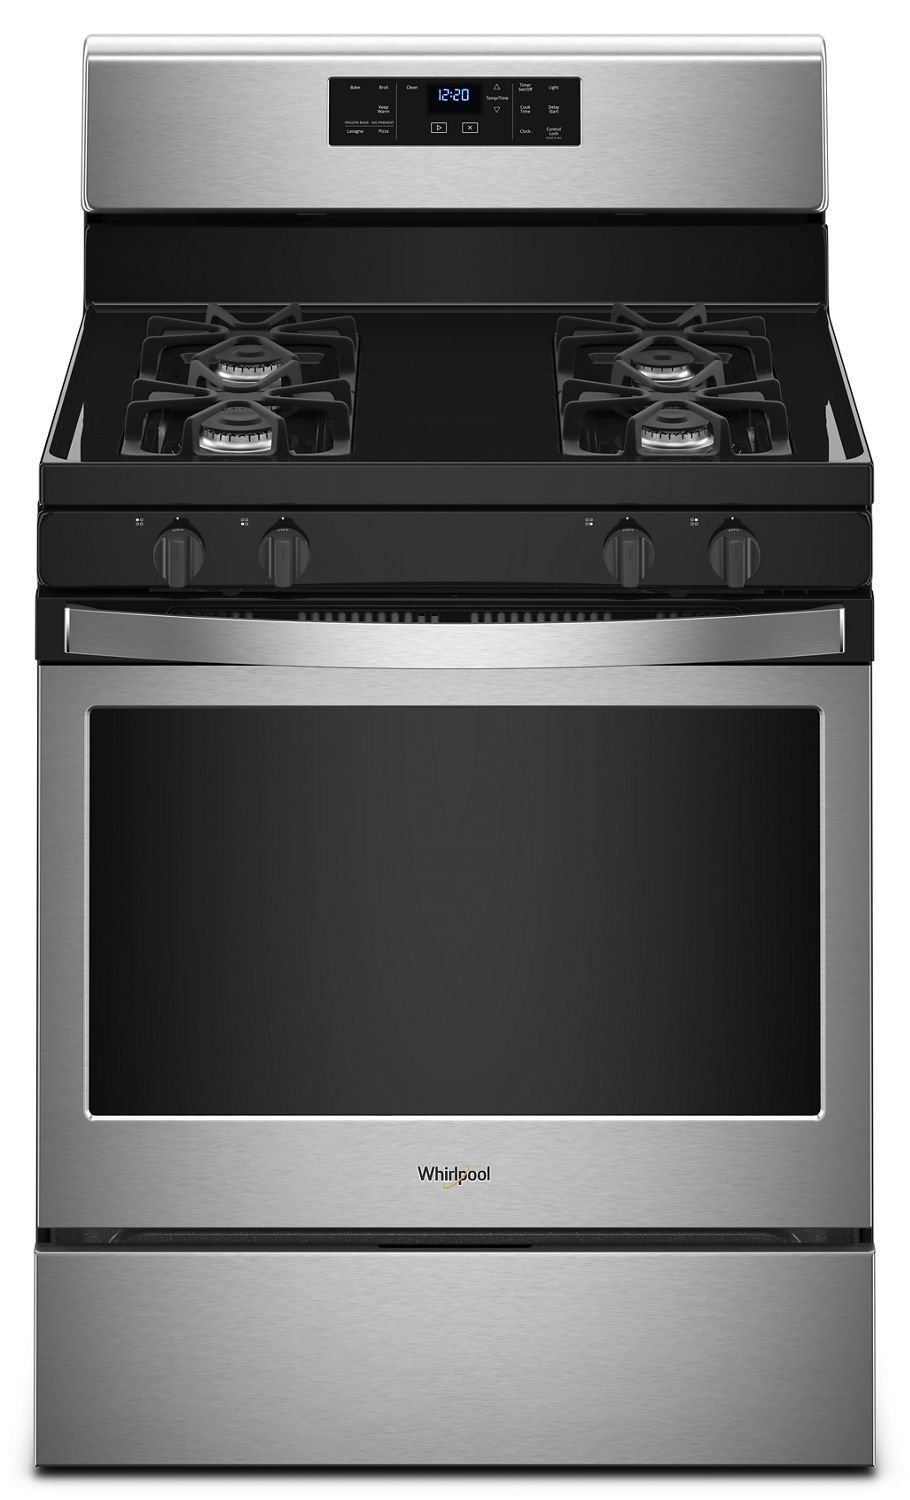 Whirlpool5.0 Cu. Ft. Freestanding Gas Range With Adjustable Self-Cleaning Stainless Steel